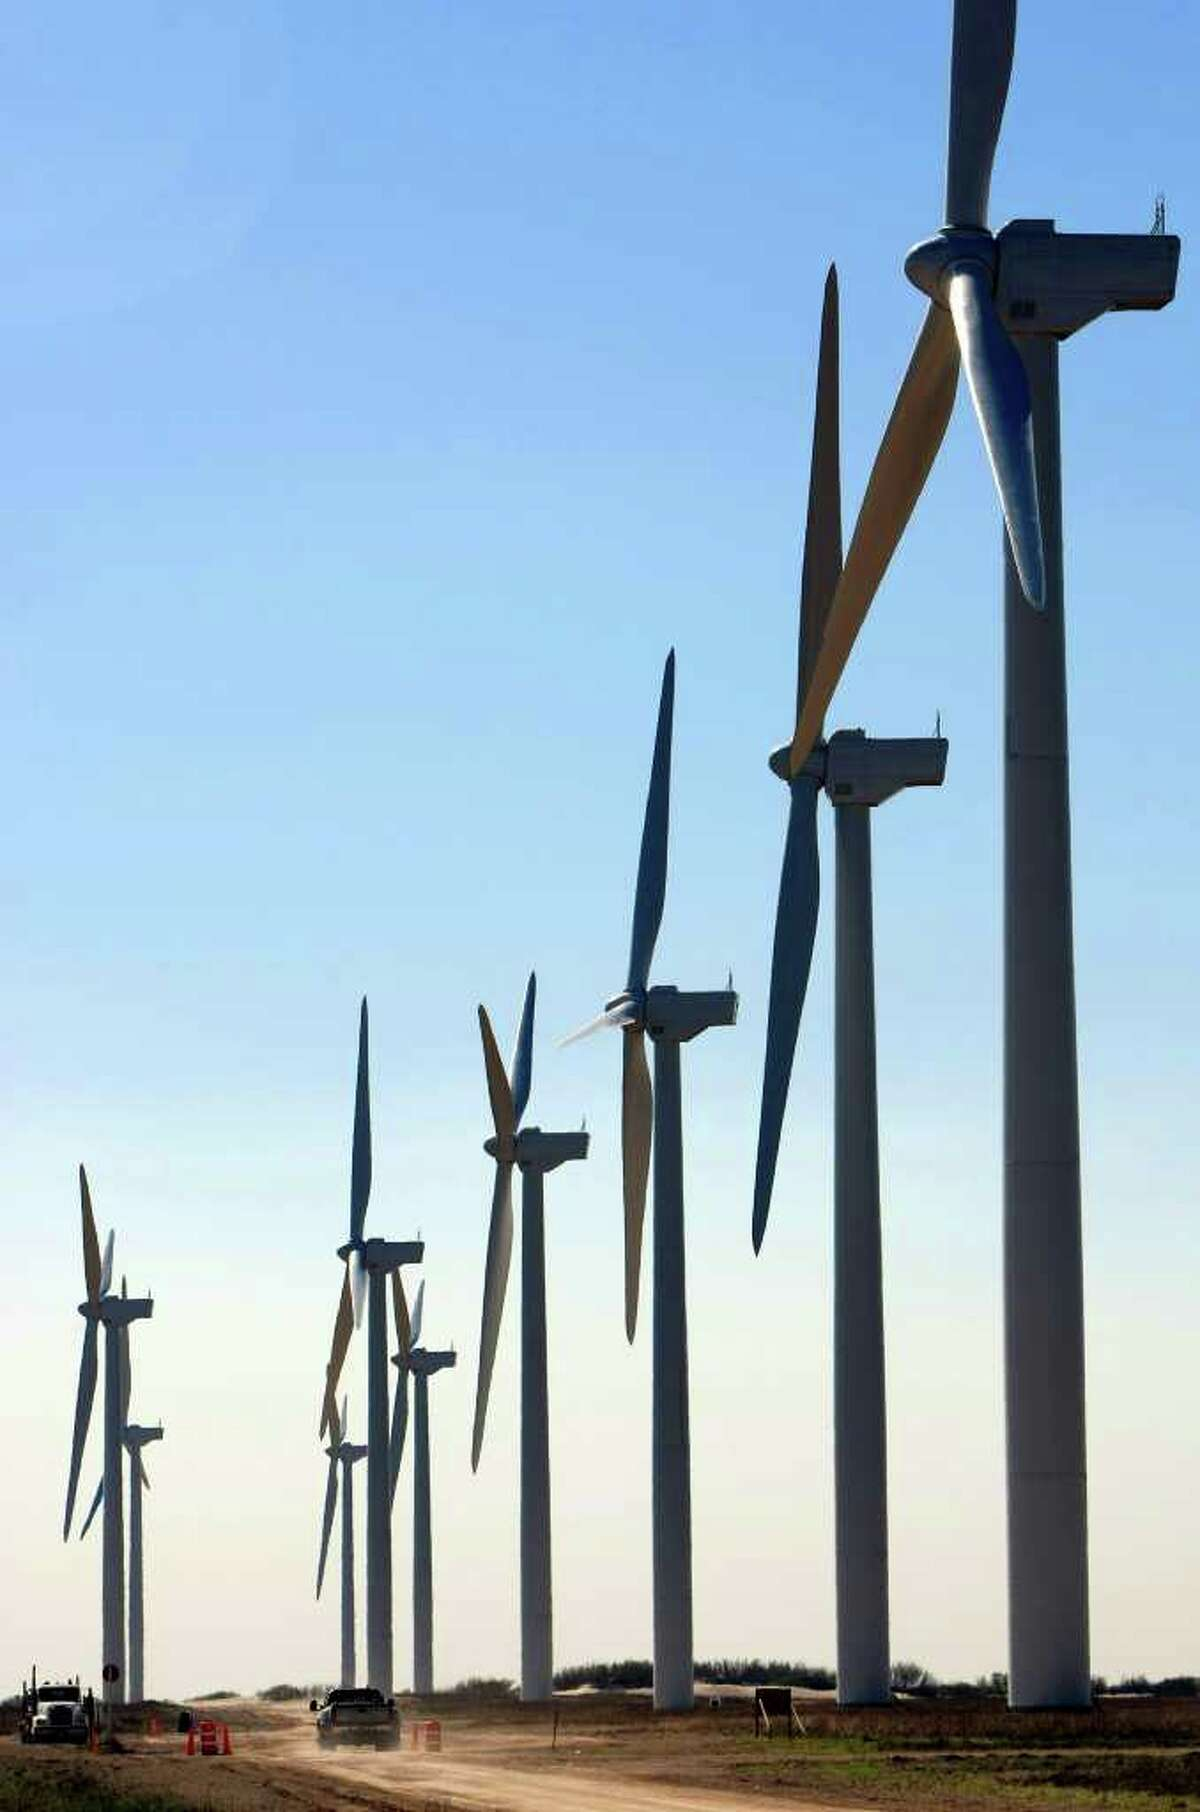 When the new project begins, most of CPS Energy's wind power will come from the Gulf Coast.